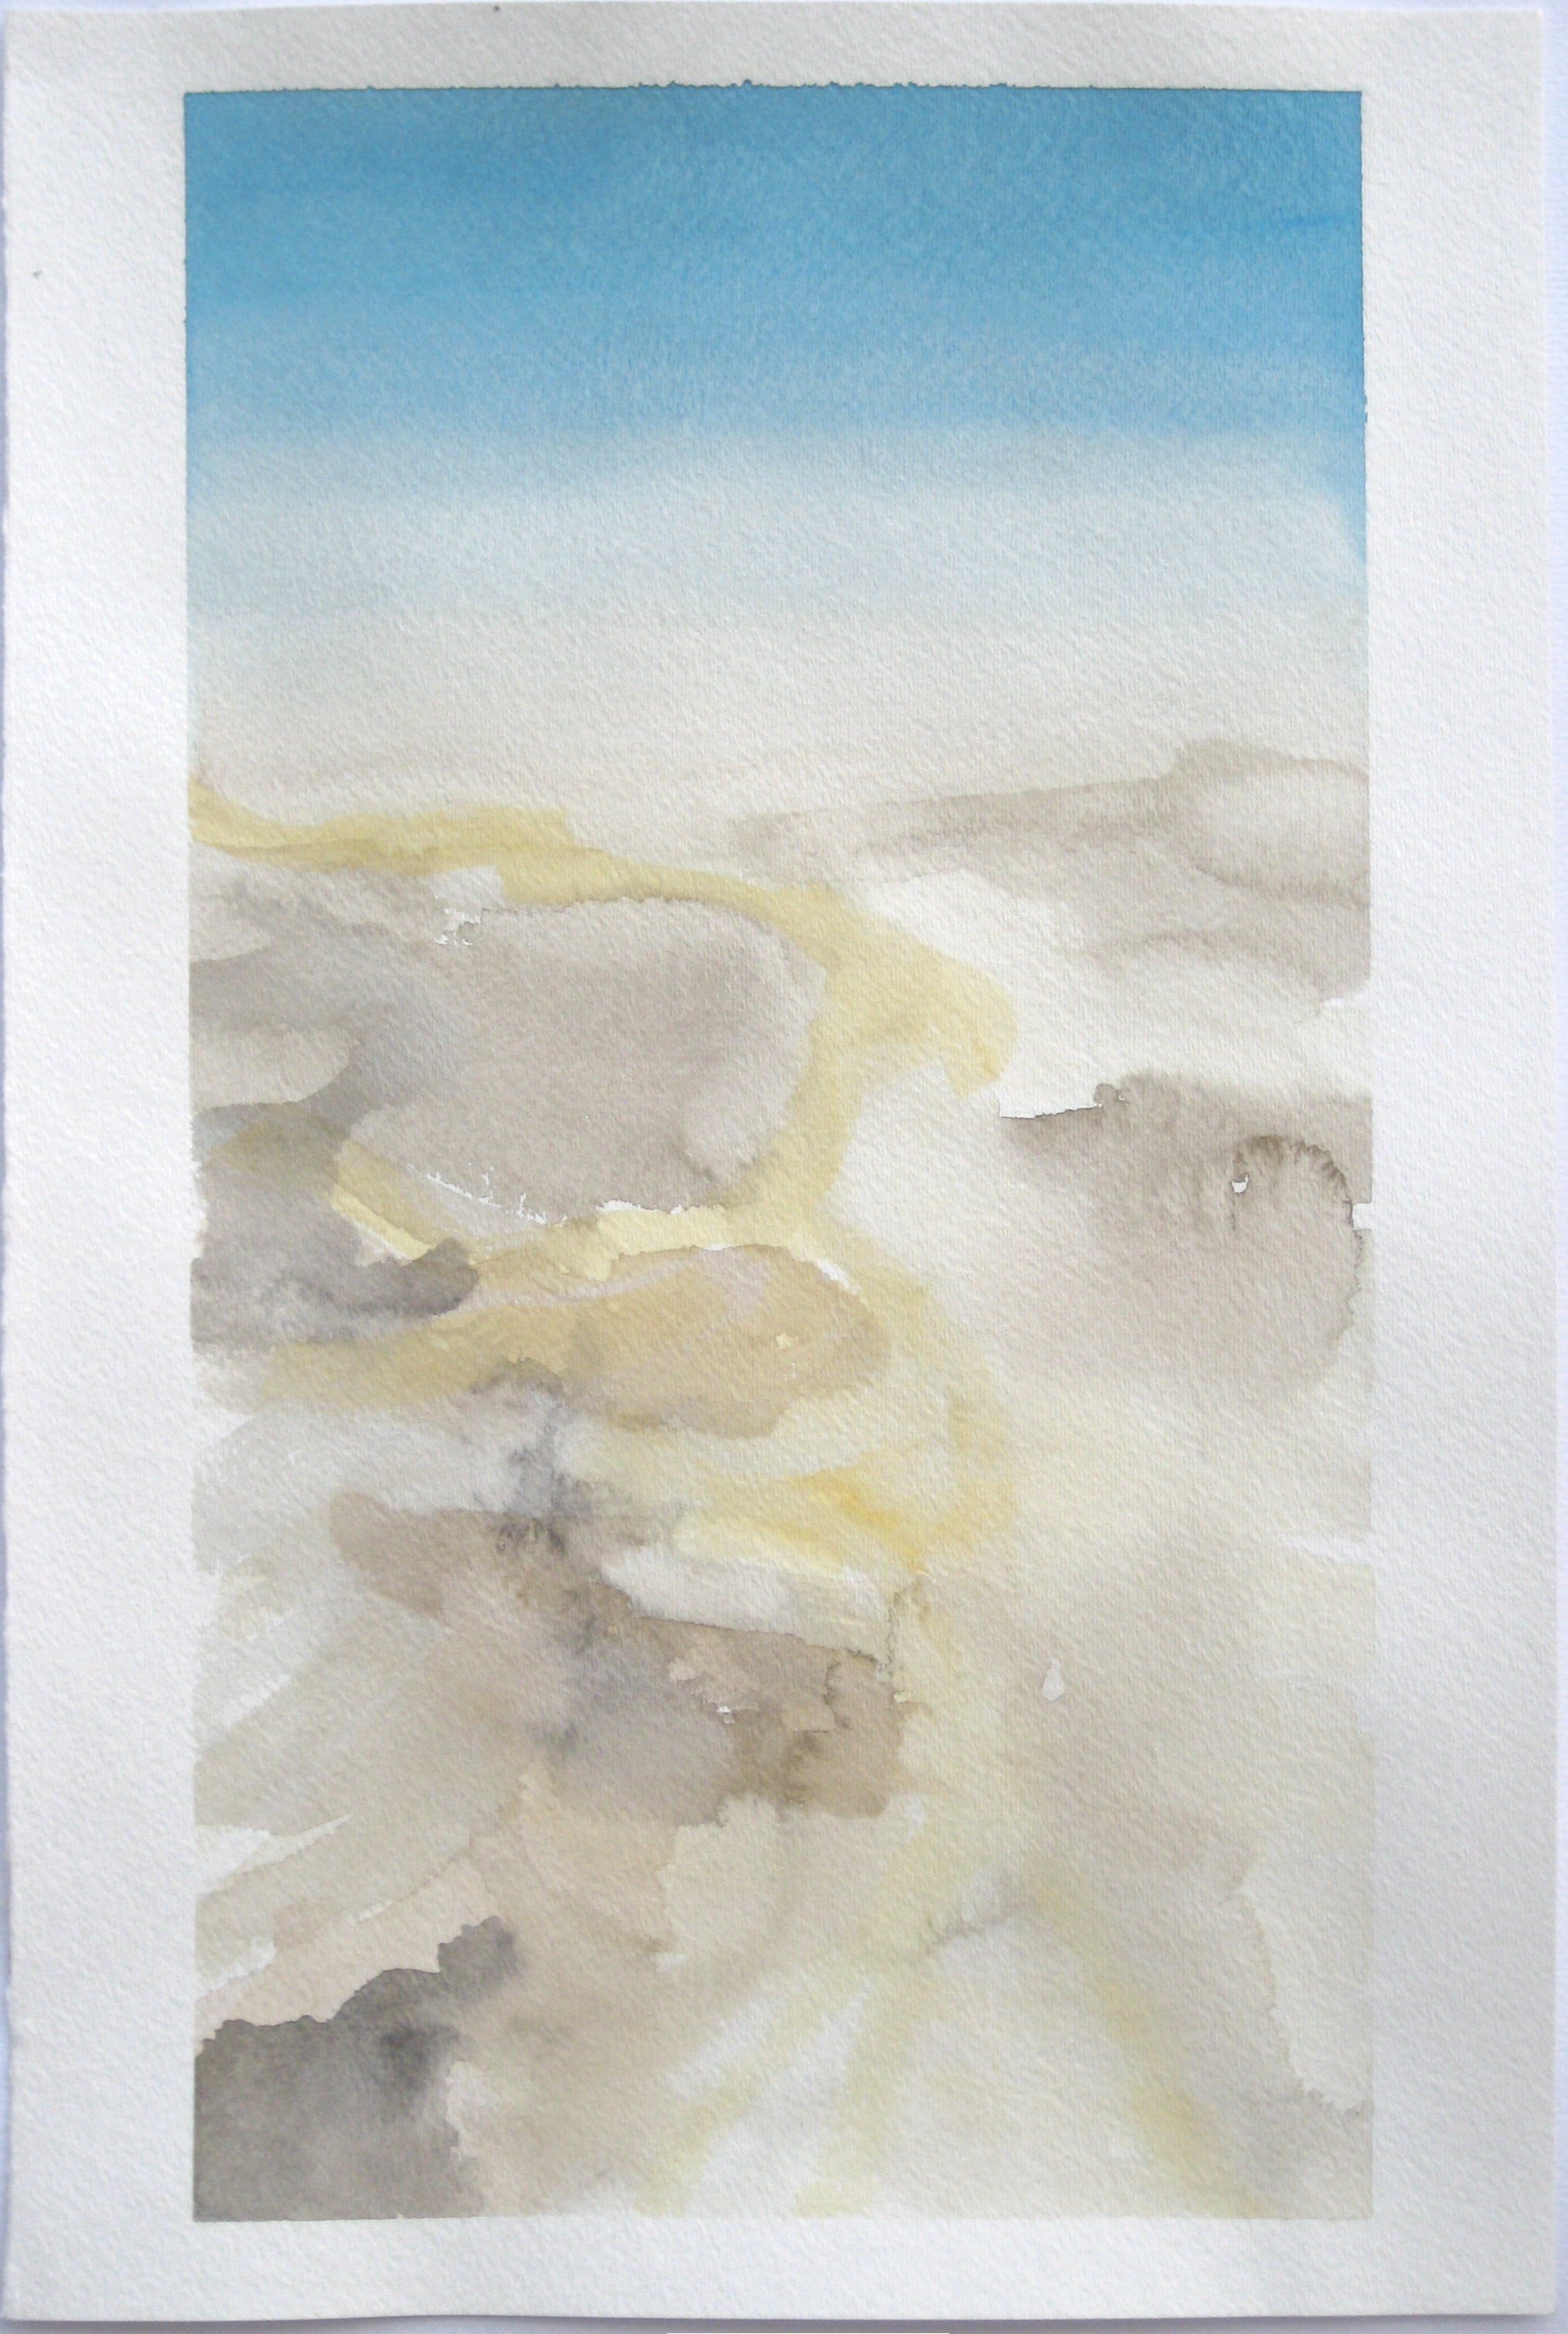 """Sky #7.4/2007, 2007, watercolor on paper paper: 18""""x12""""; image: 16 3/4""""x9 1/8"""""""